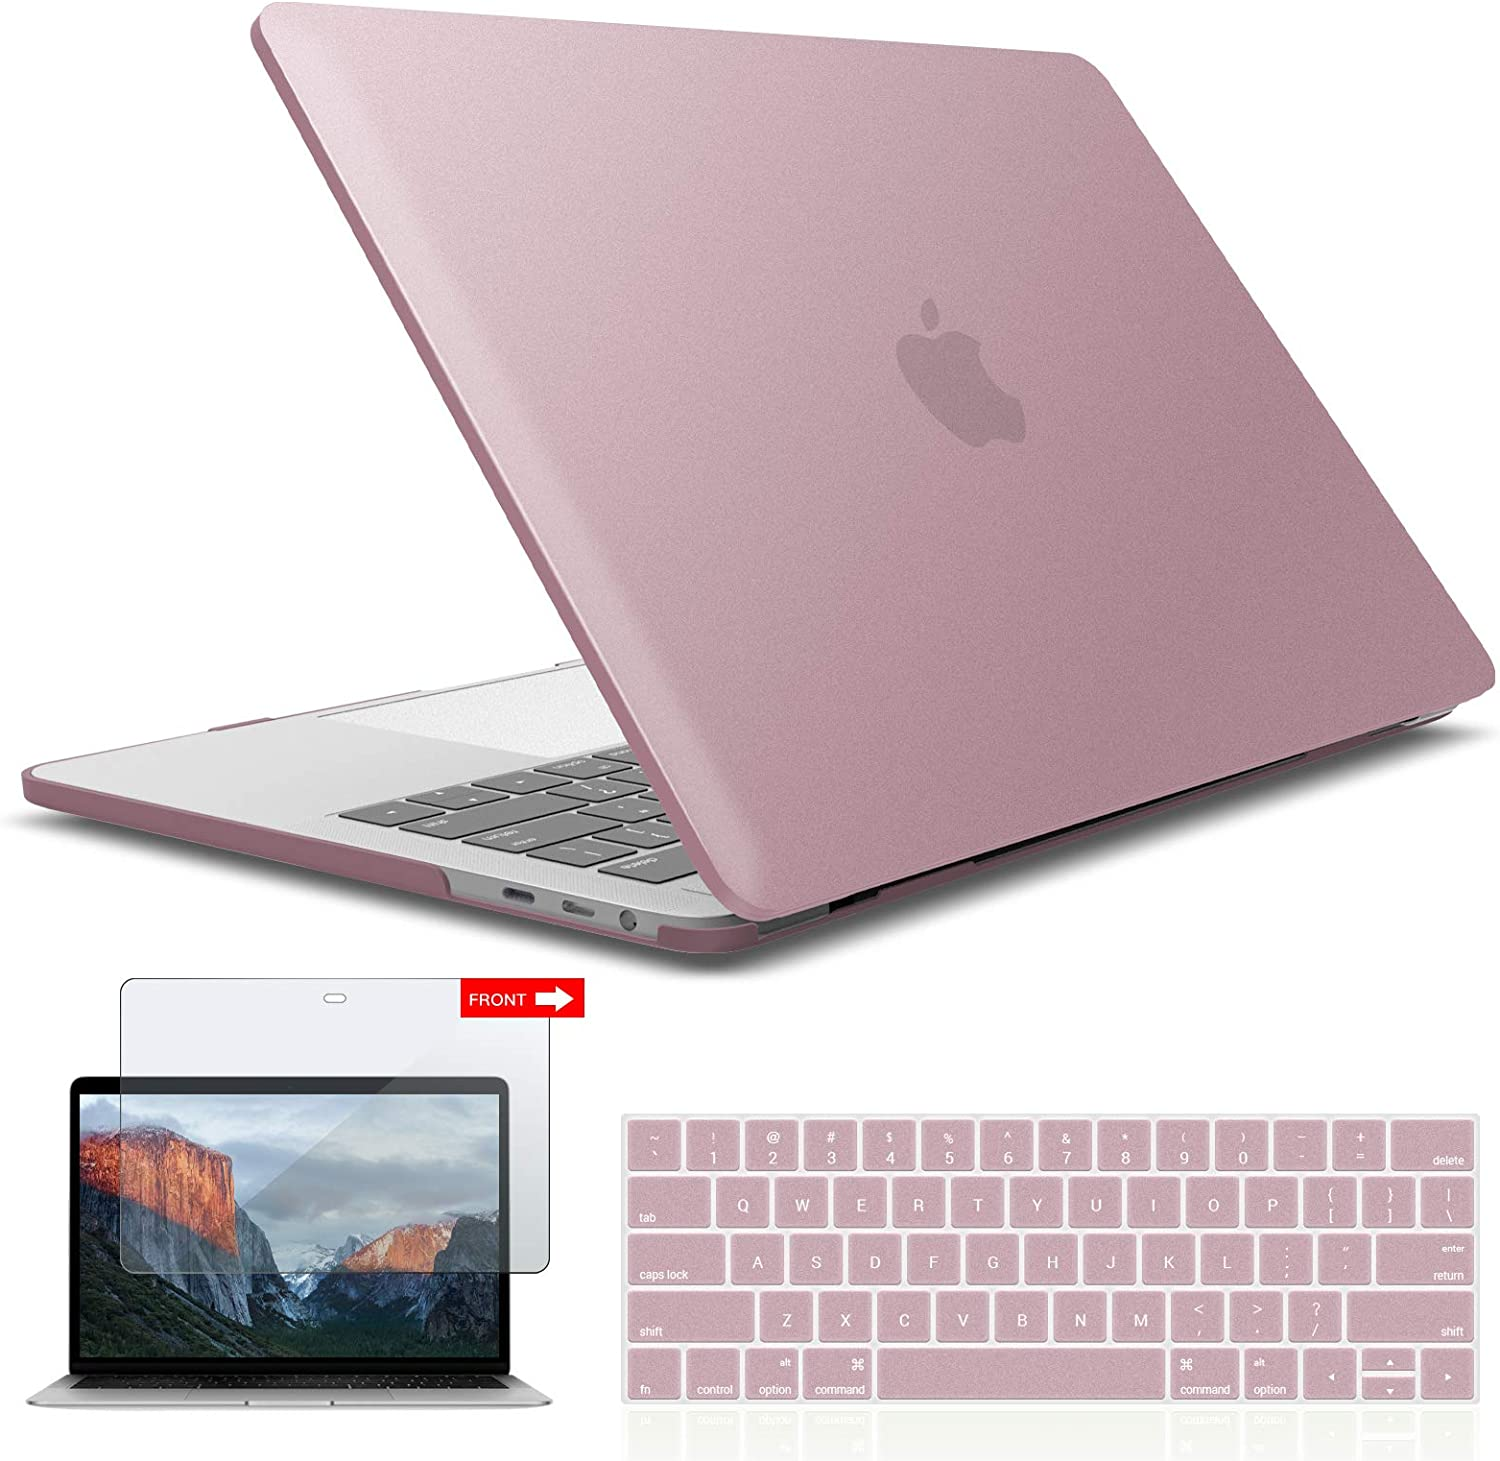 IBENZER MacBook Pro 13 Inch Case 2019 2018 2017 2016 A2159 A1989 A1706 A1708, Hard Shell Case with Keyboard & Screen Cover for Apple Mac Pro 13 Touch Bar, Rose Gold, T13MPK+2A